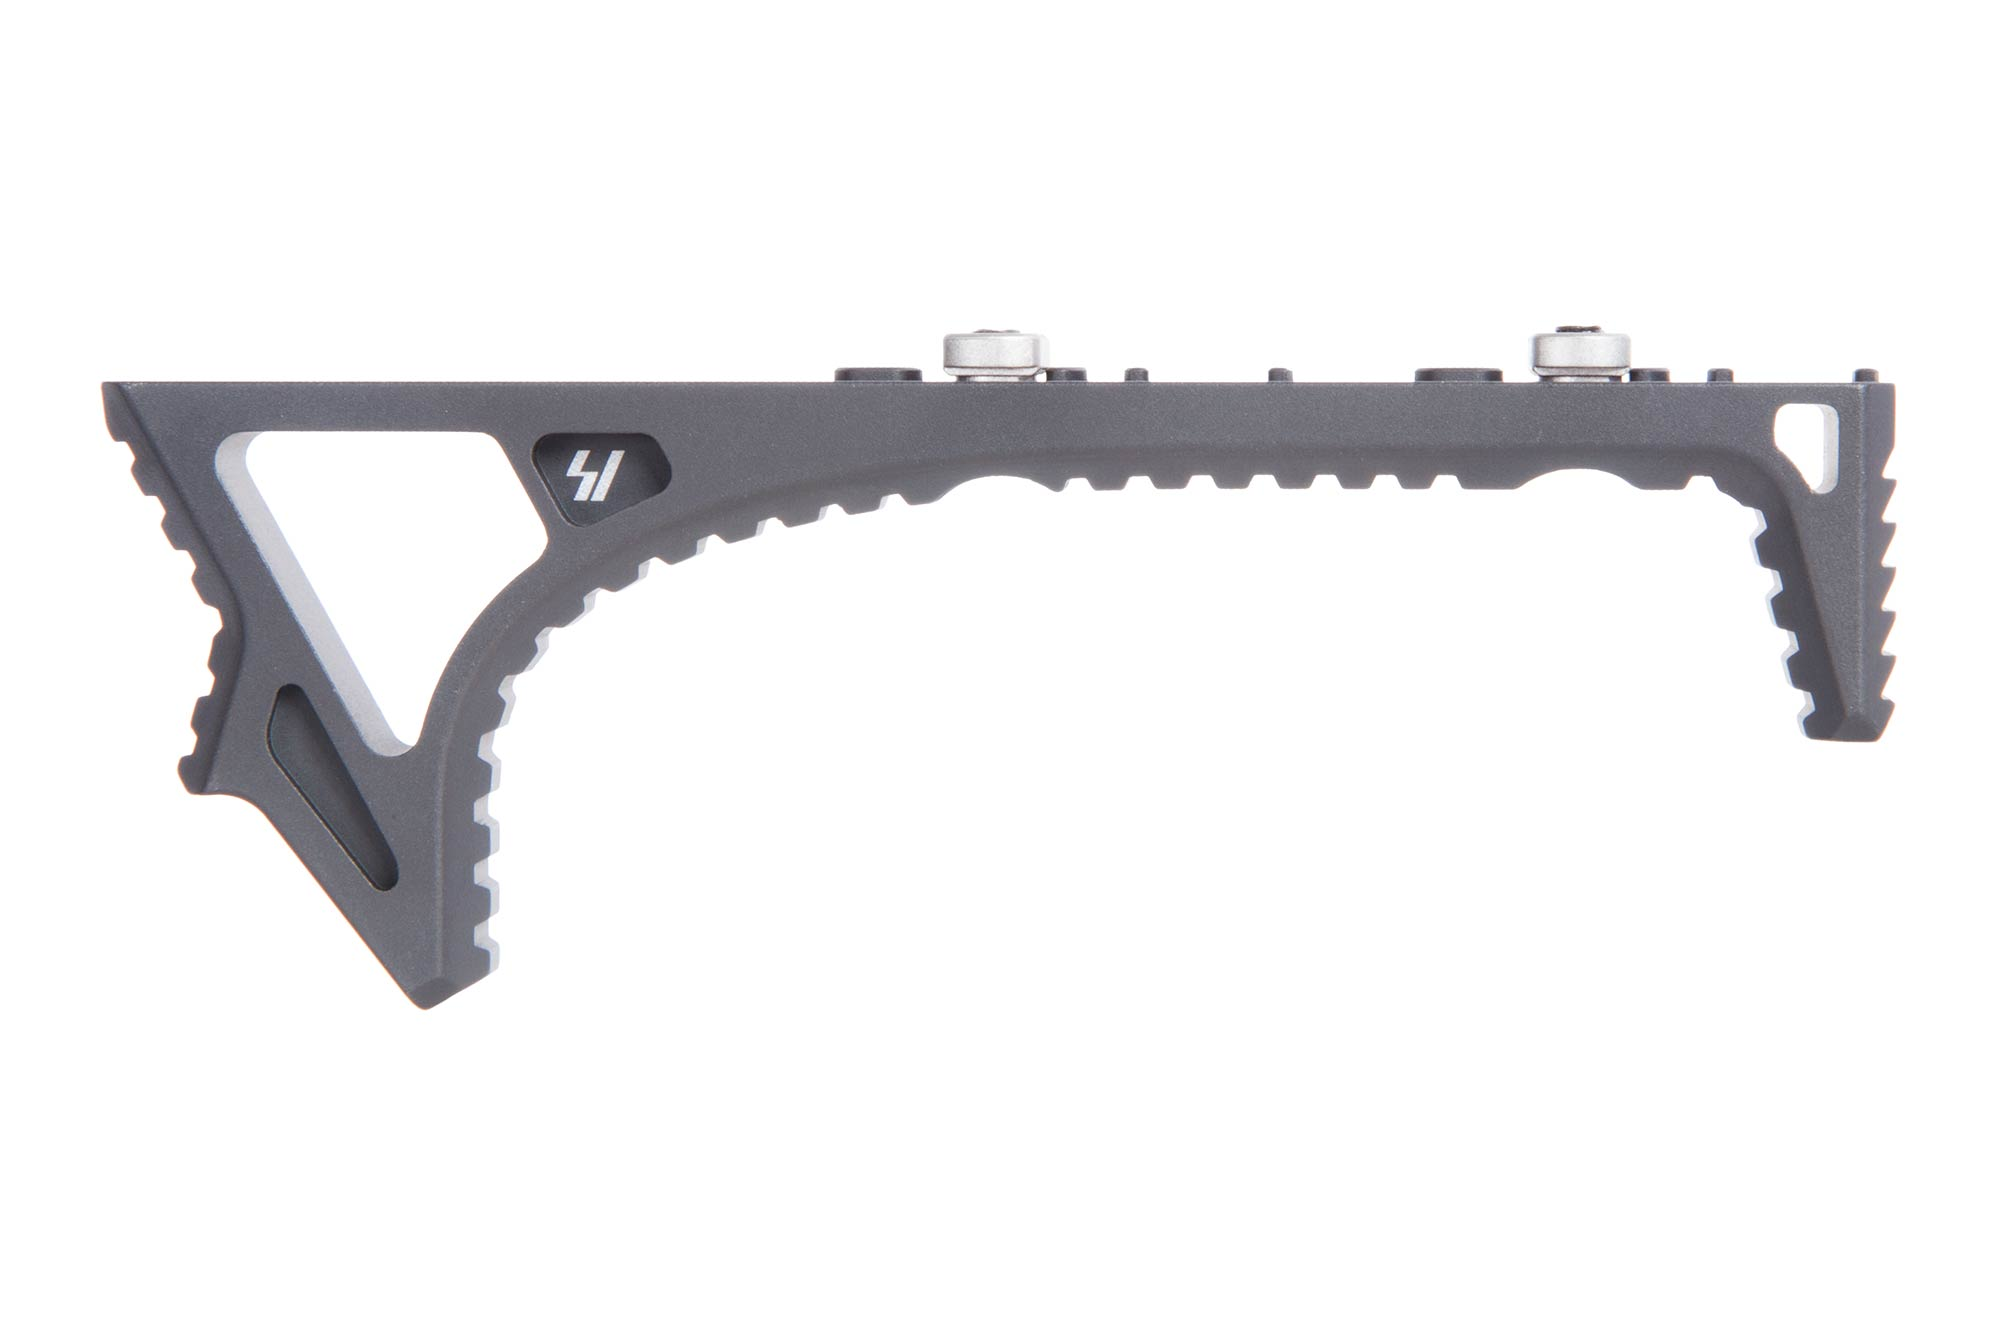 The Strike Industries LINK angled fore grip is compatible with M-LOK and KeyMod